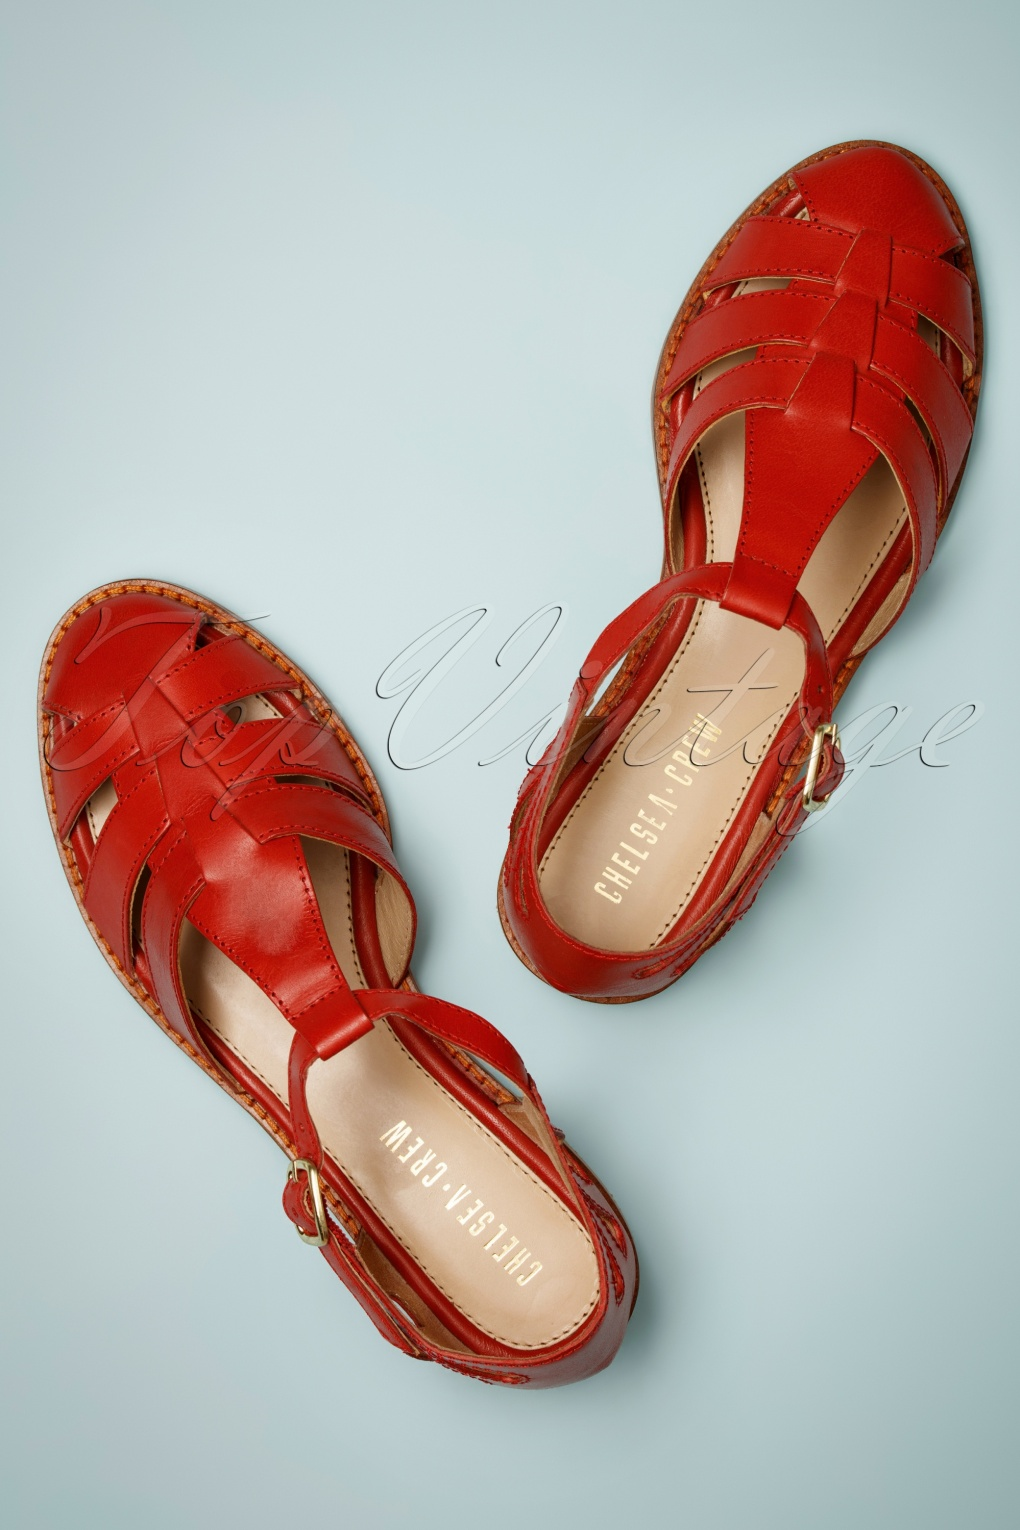 1930s Shoes – Art Deco Shoes, Heels, Boots, Sandals 60s Carina Leather Sandals in Red £24.95 AT vintagedancer.com